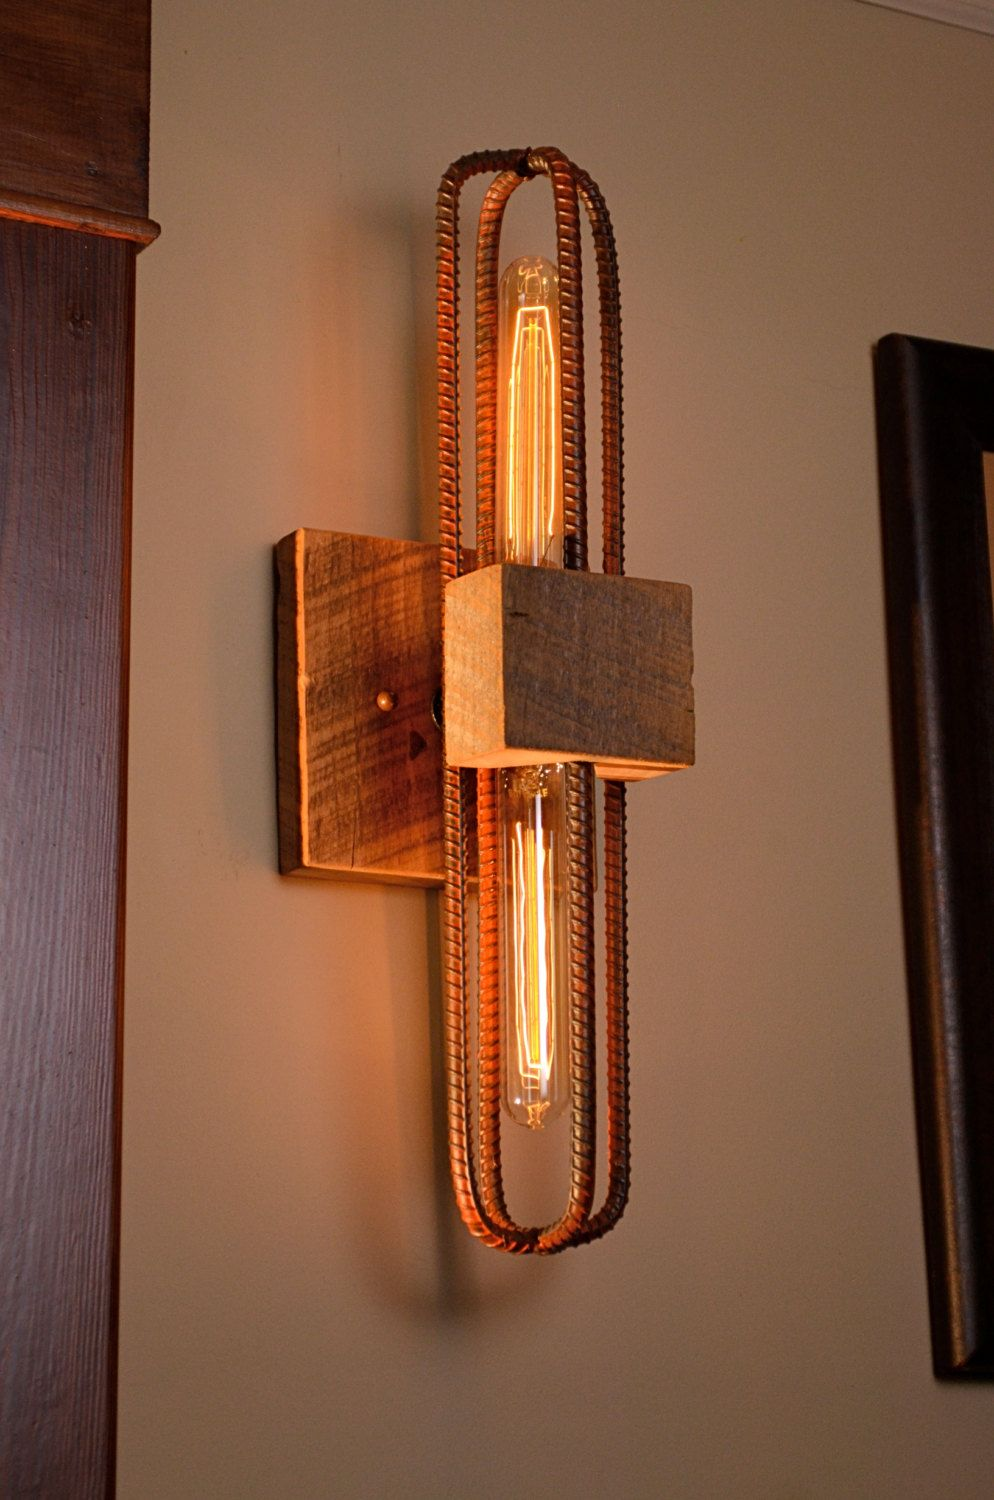 Rebar And Barn Wood Sconce Vanity Light Fixture In Rubbed